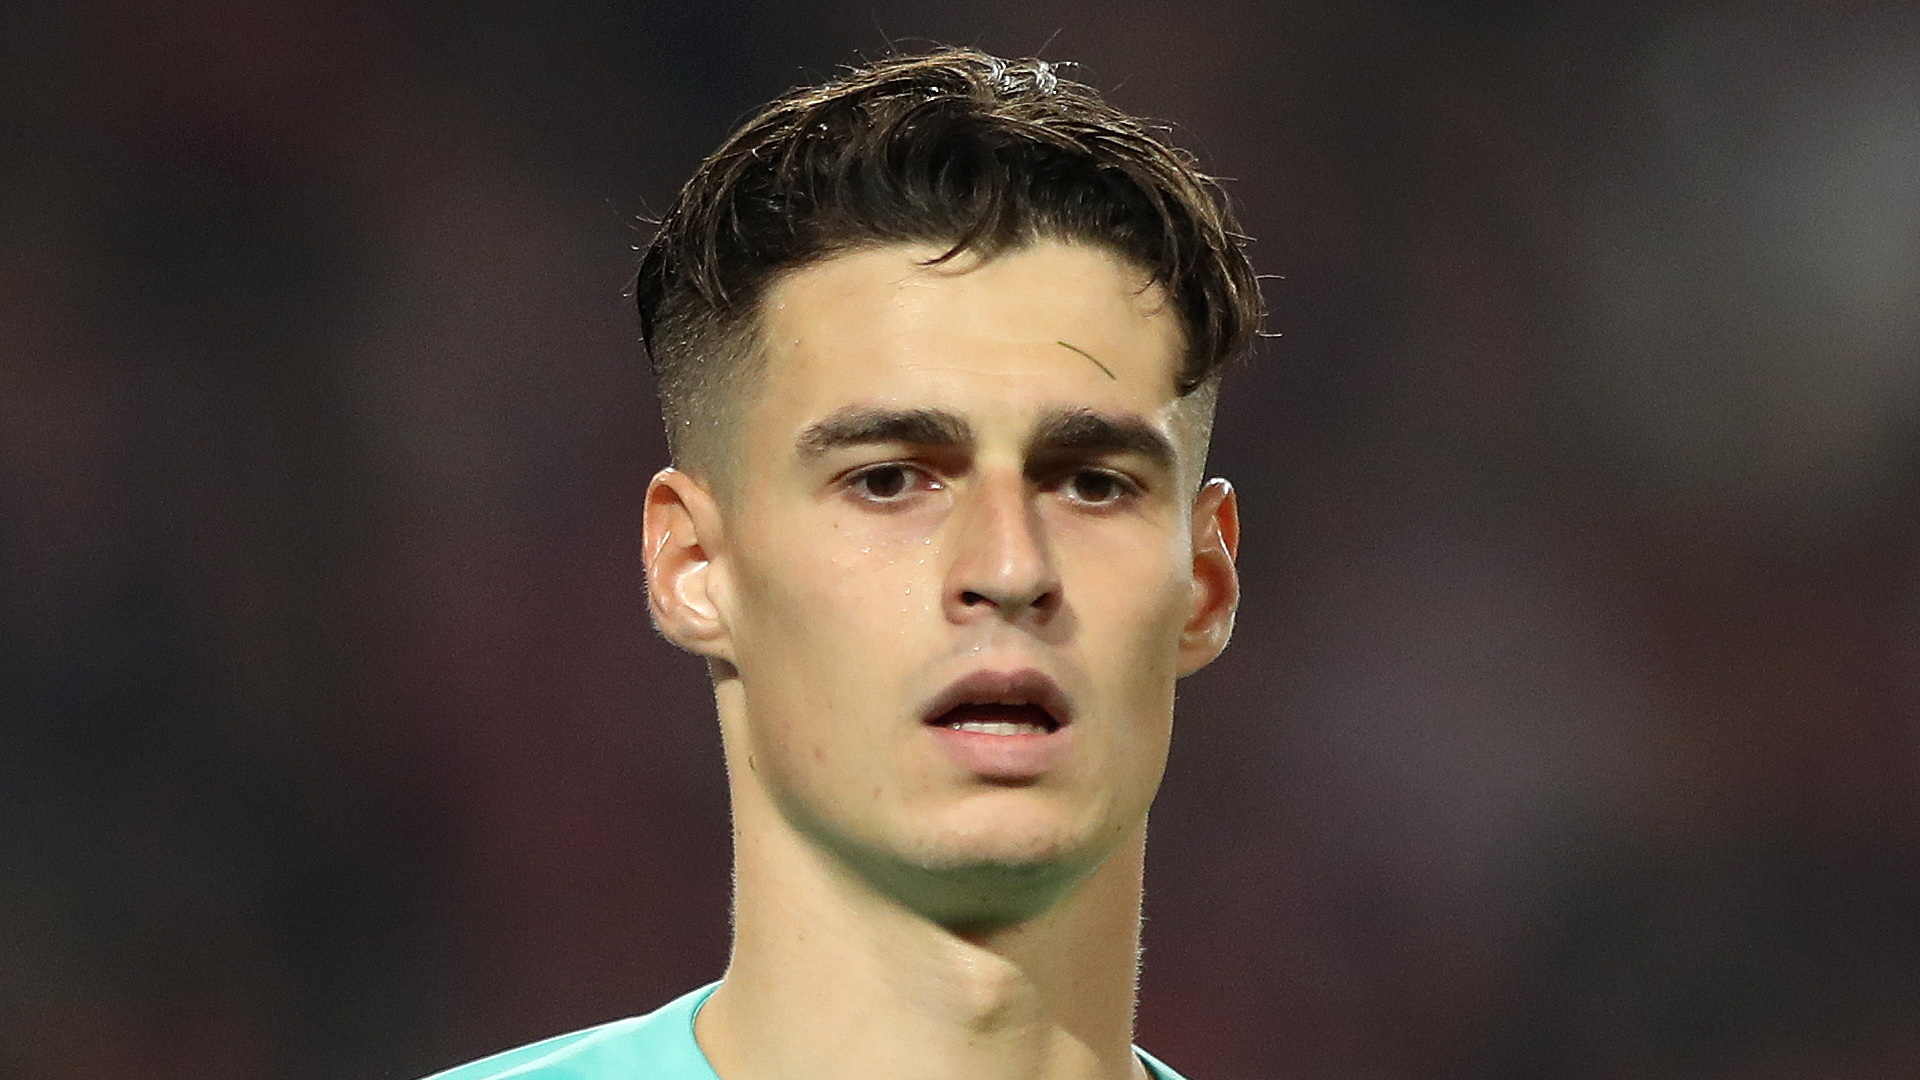 Chelsea dropped Kepa, the most expensive goalkeeper in the world 1